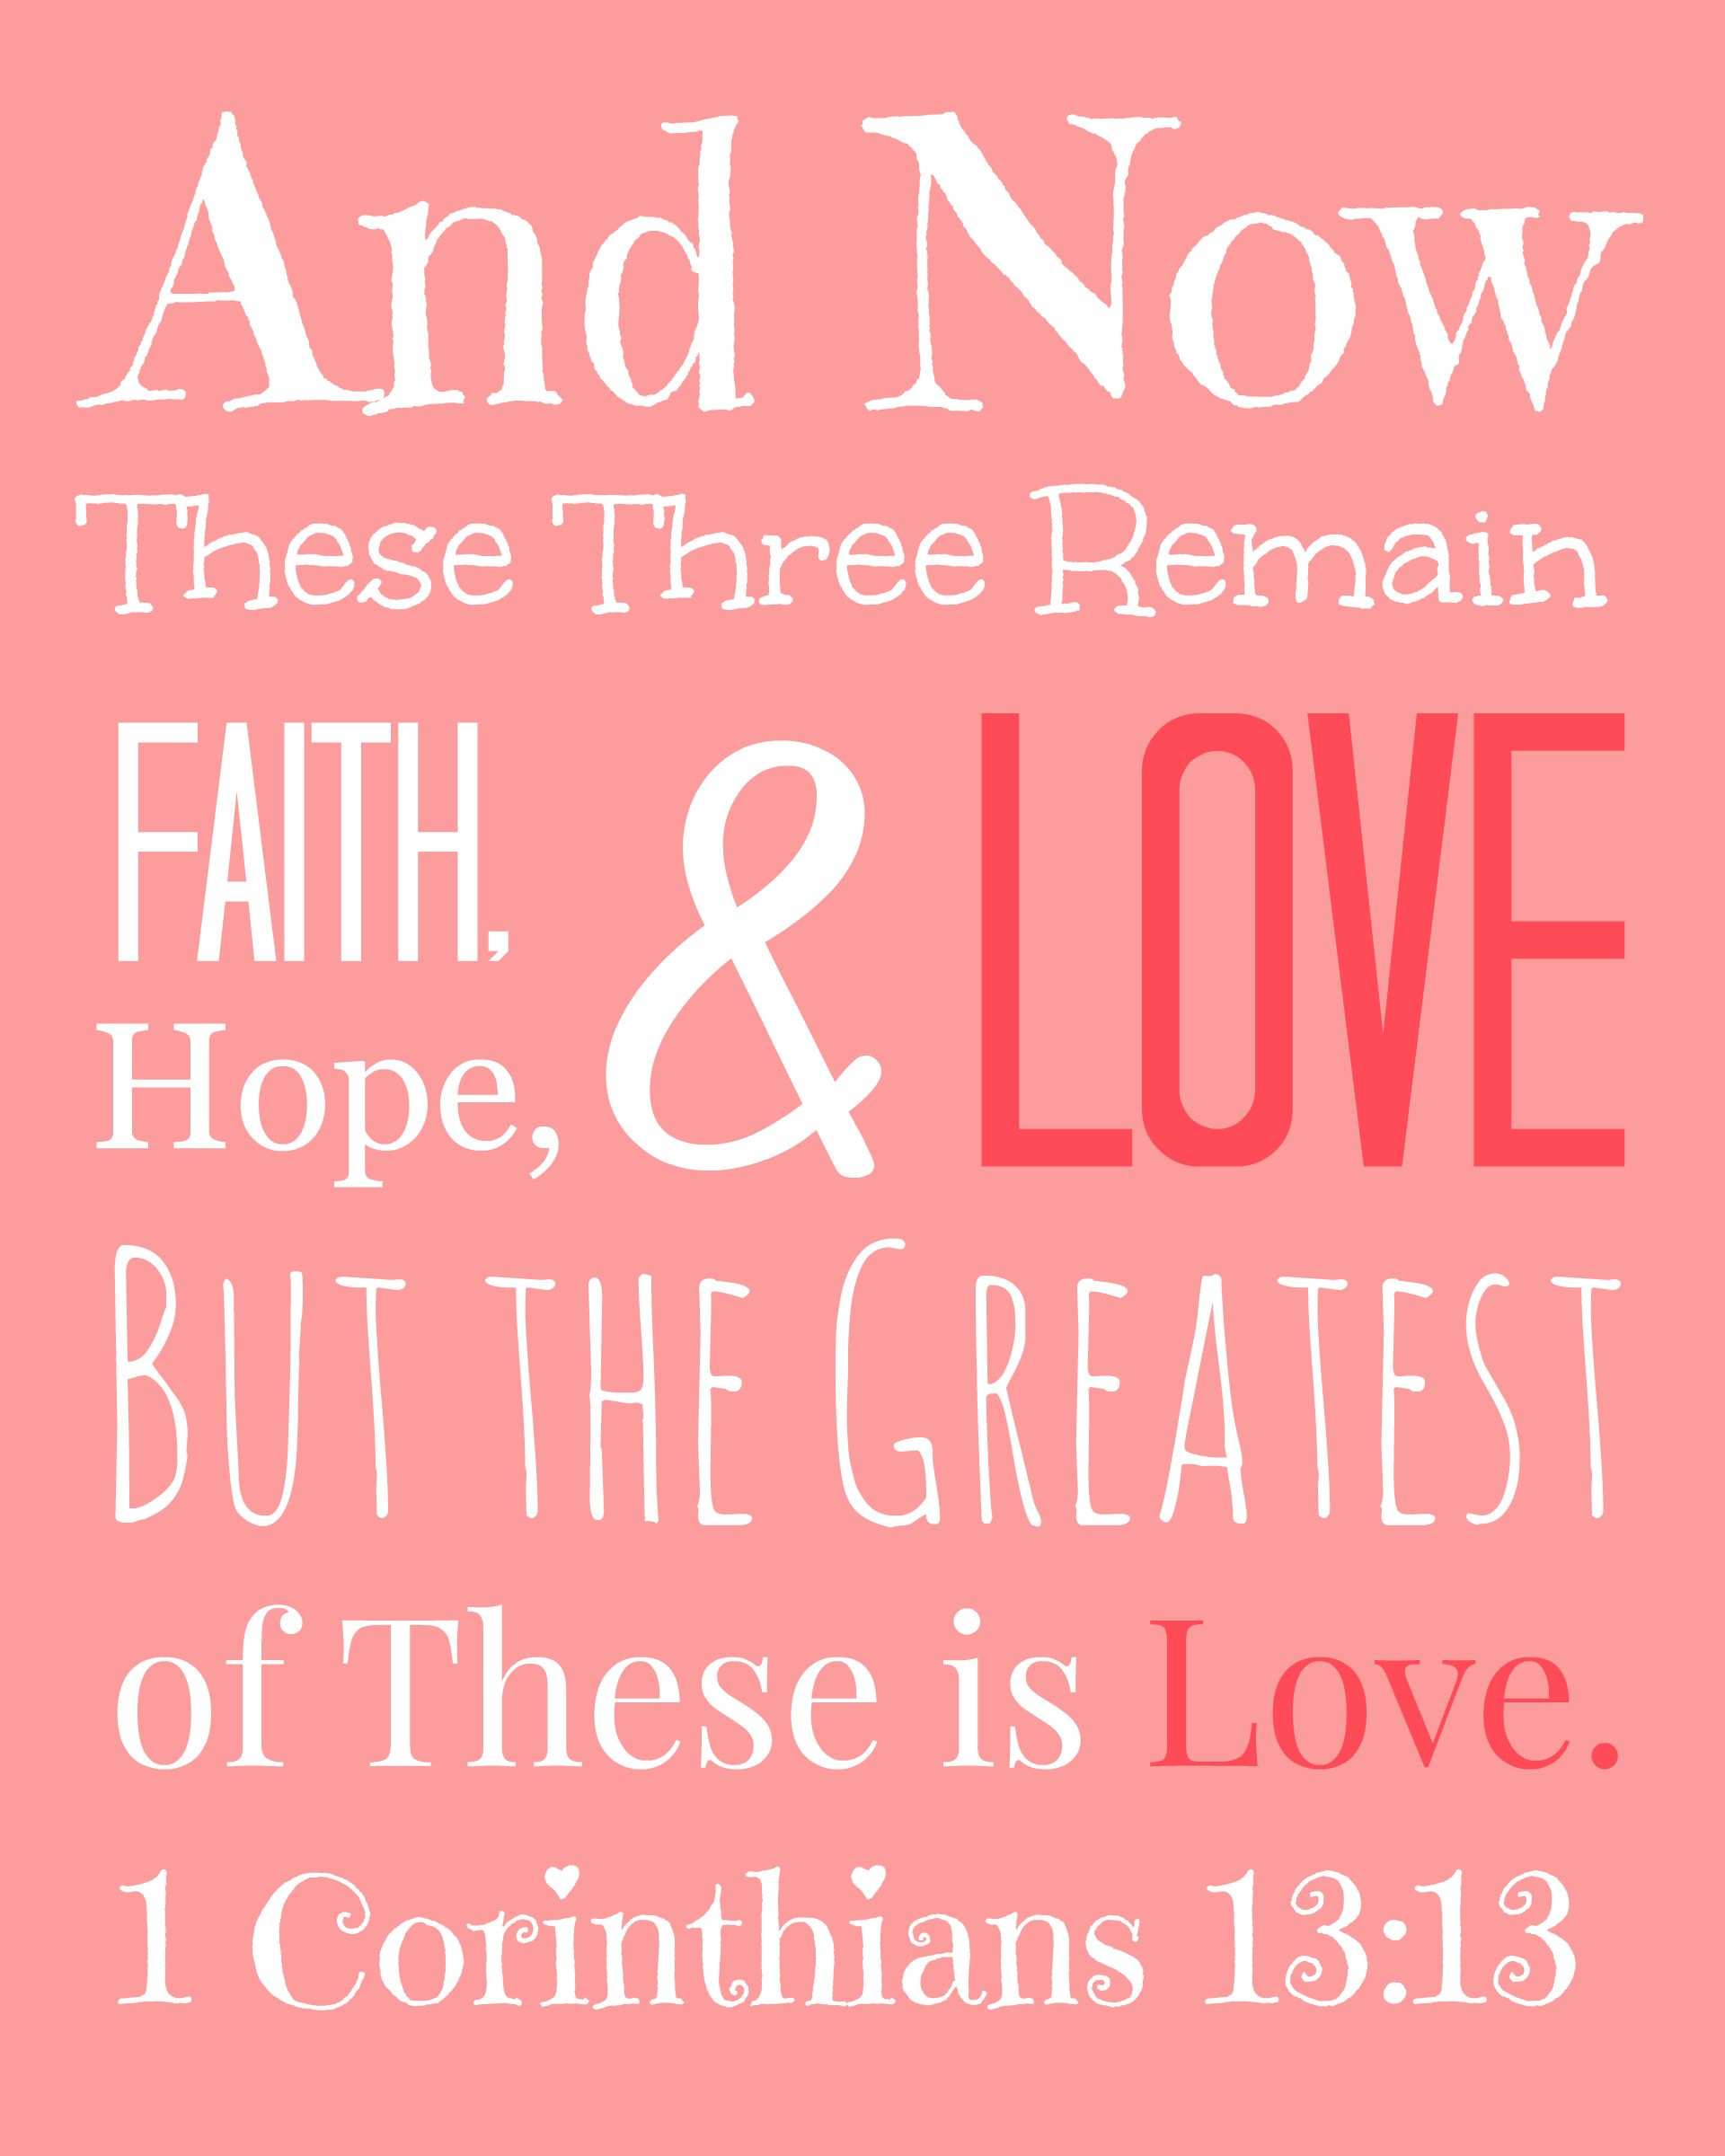 Corinthians Love Quotes Love Bible Verses  1 Corinthians 1313  The Well Nourished Nest